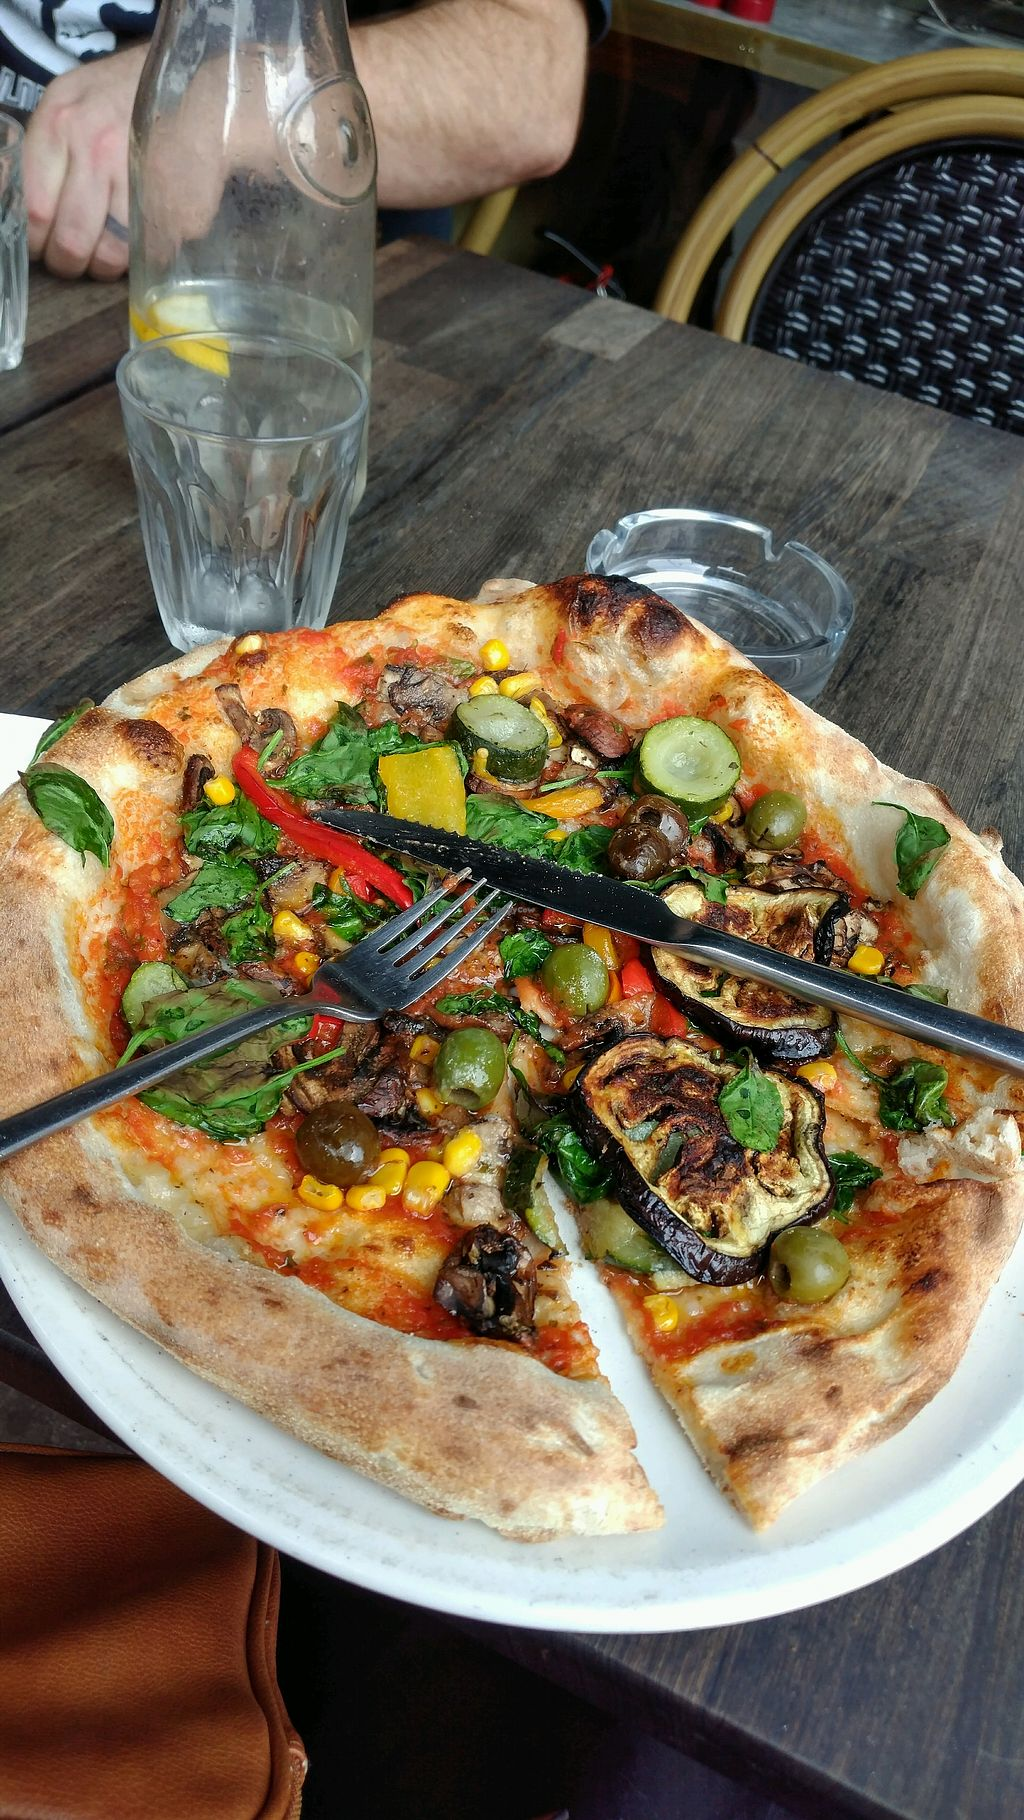 """Photo of Pizza Sophia  by <a href=""""/members/profile/MichelleEllenGrace"""">MichelleEllenGrace</a> <br/>Veganlissimo Pizza <br/> May 24, 2018  - <a href='/contact/abuse/image/111075/404465'>Report</a>"""